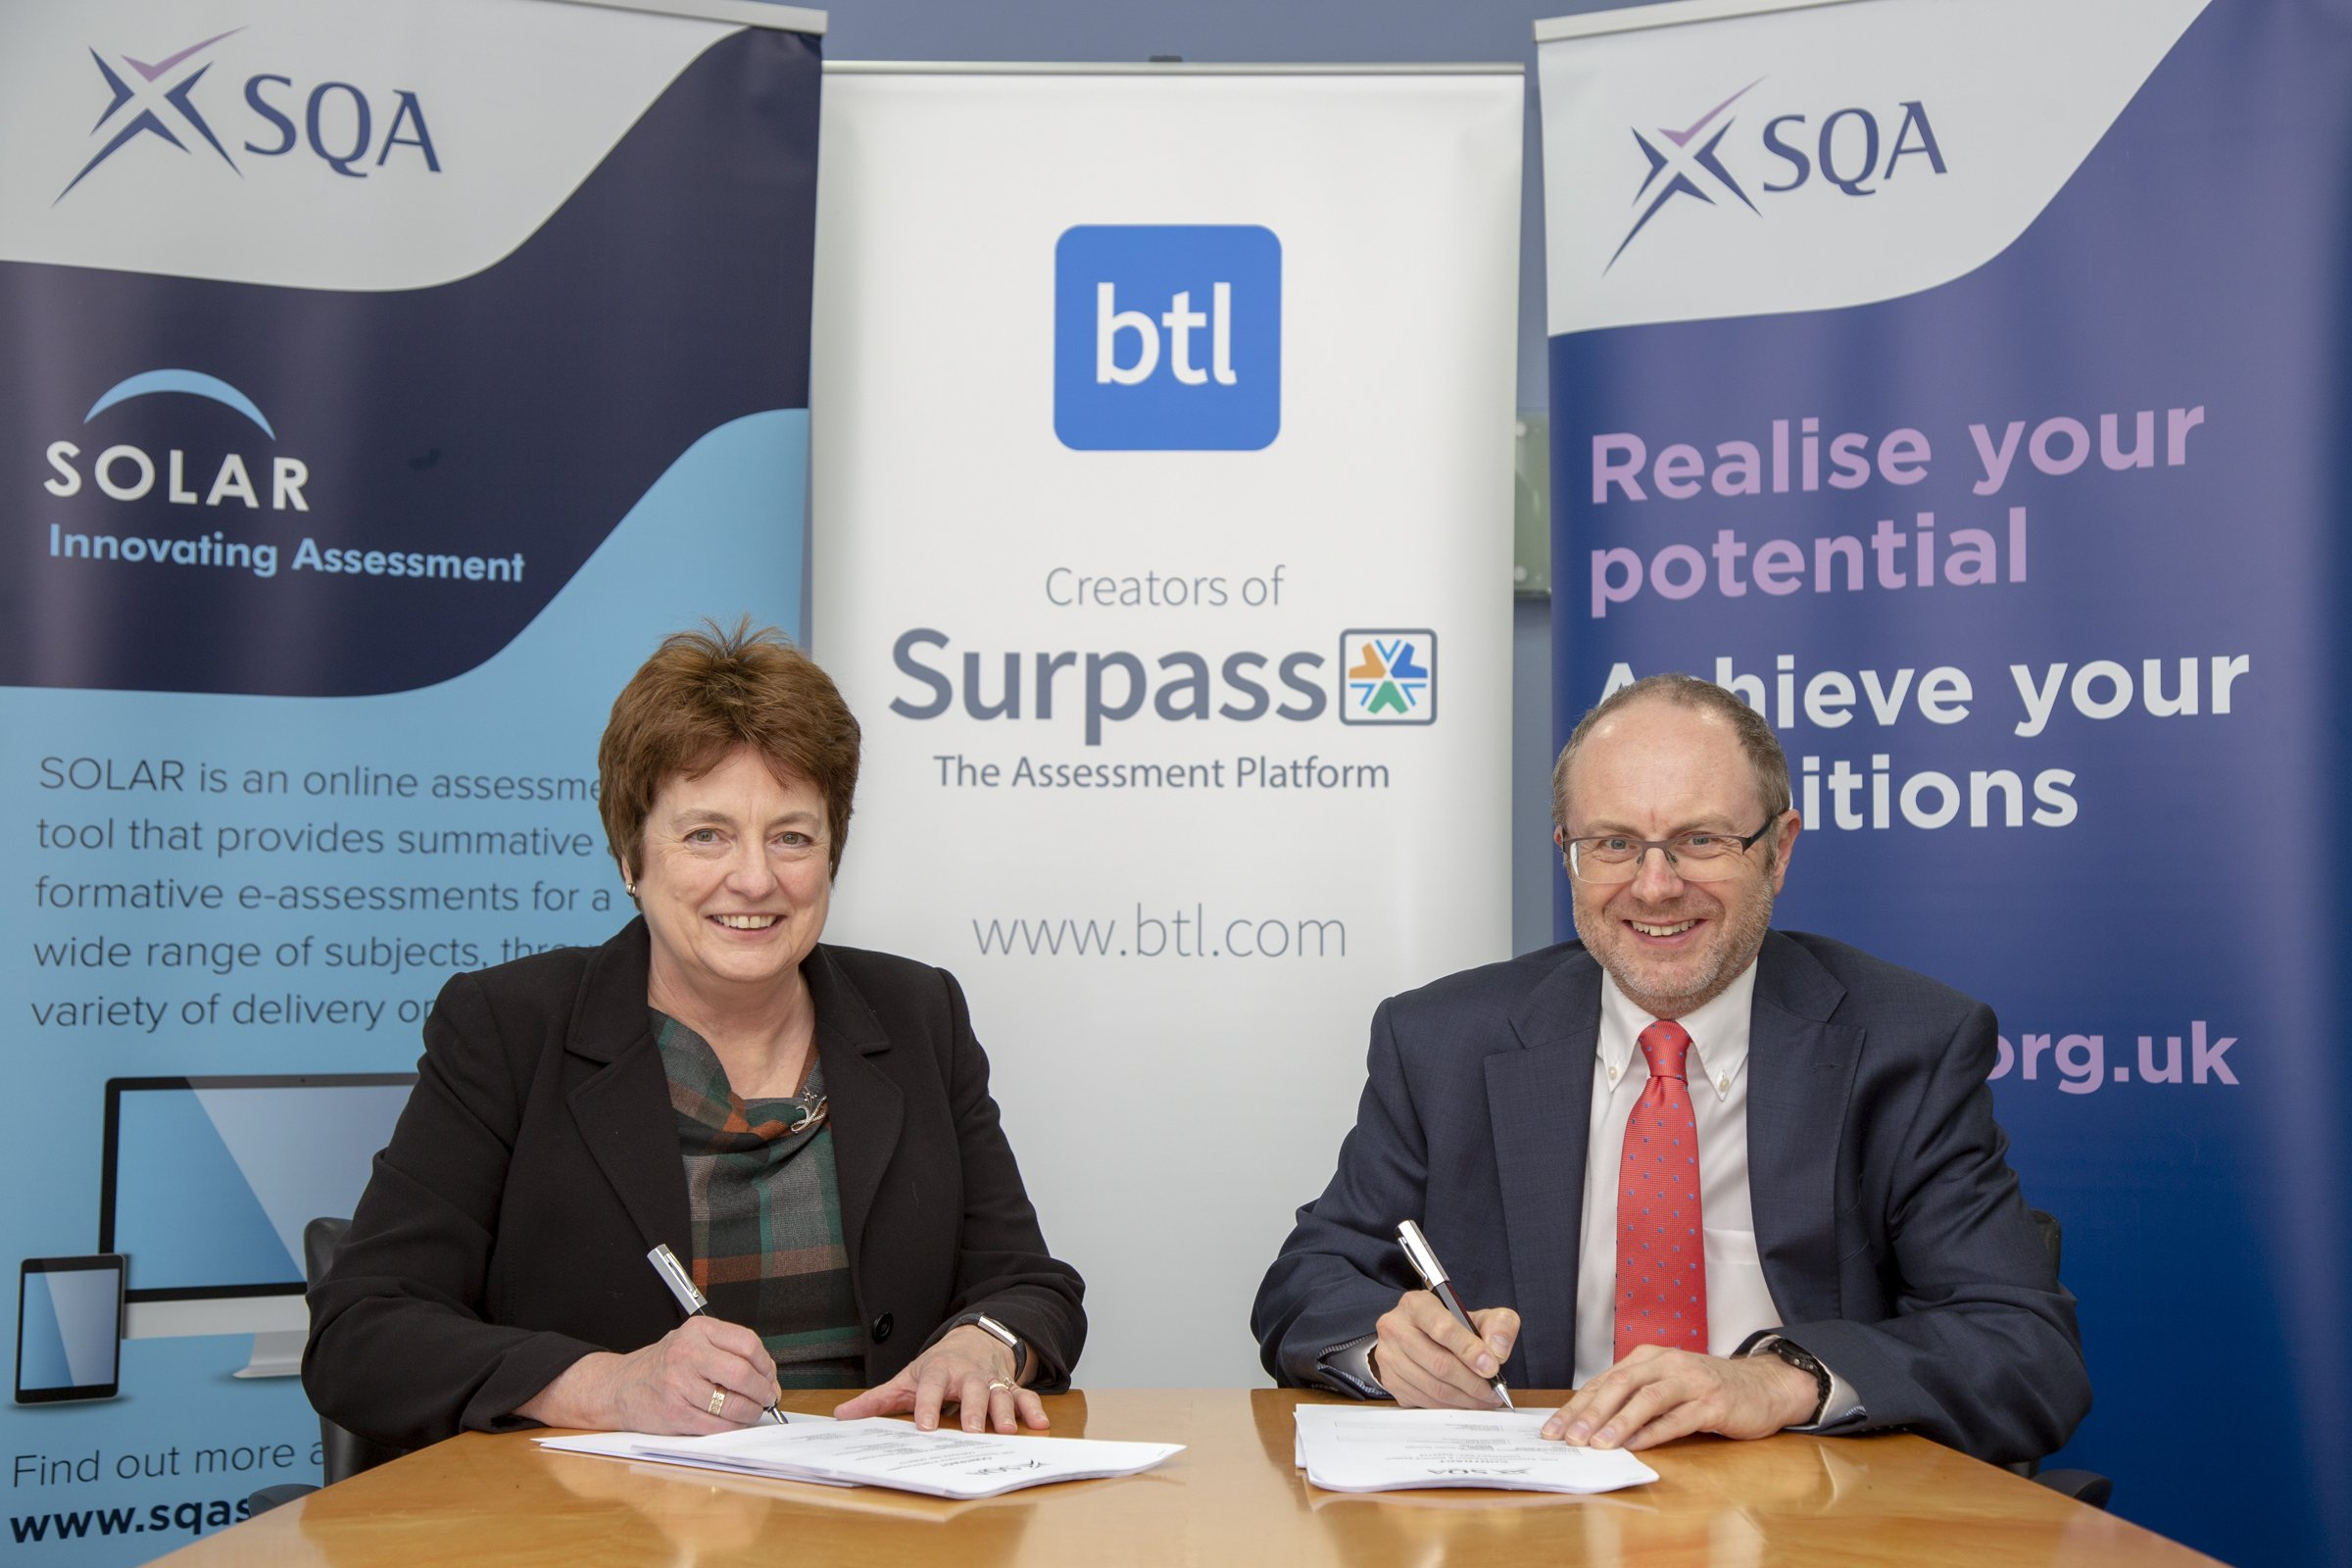 SQA confirms its investment in cutting-edge technology for high-stakes e-assessment